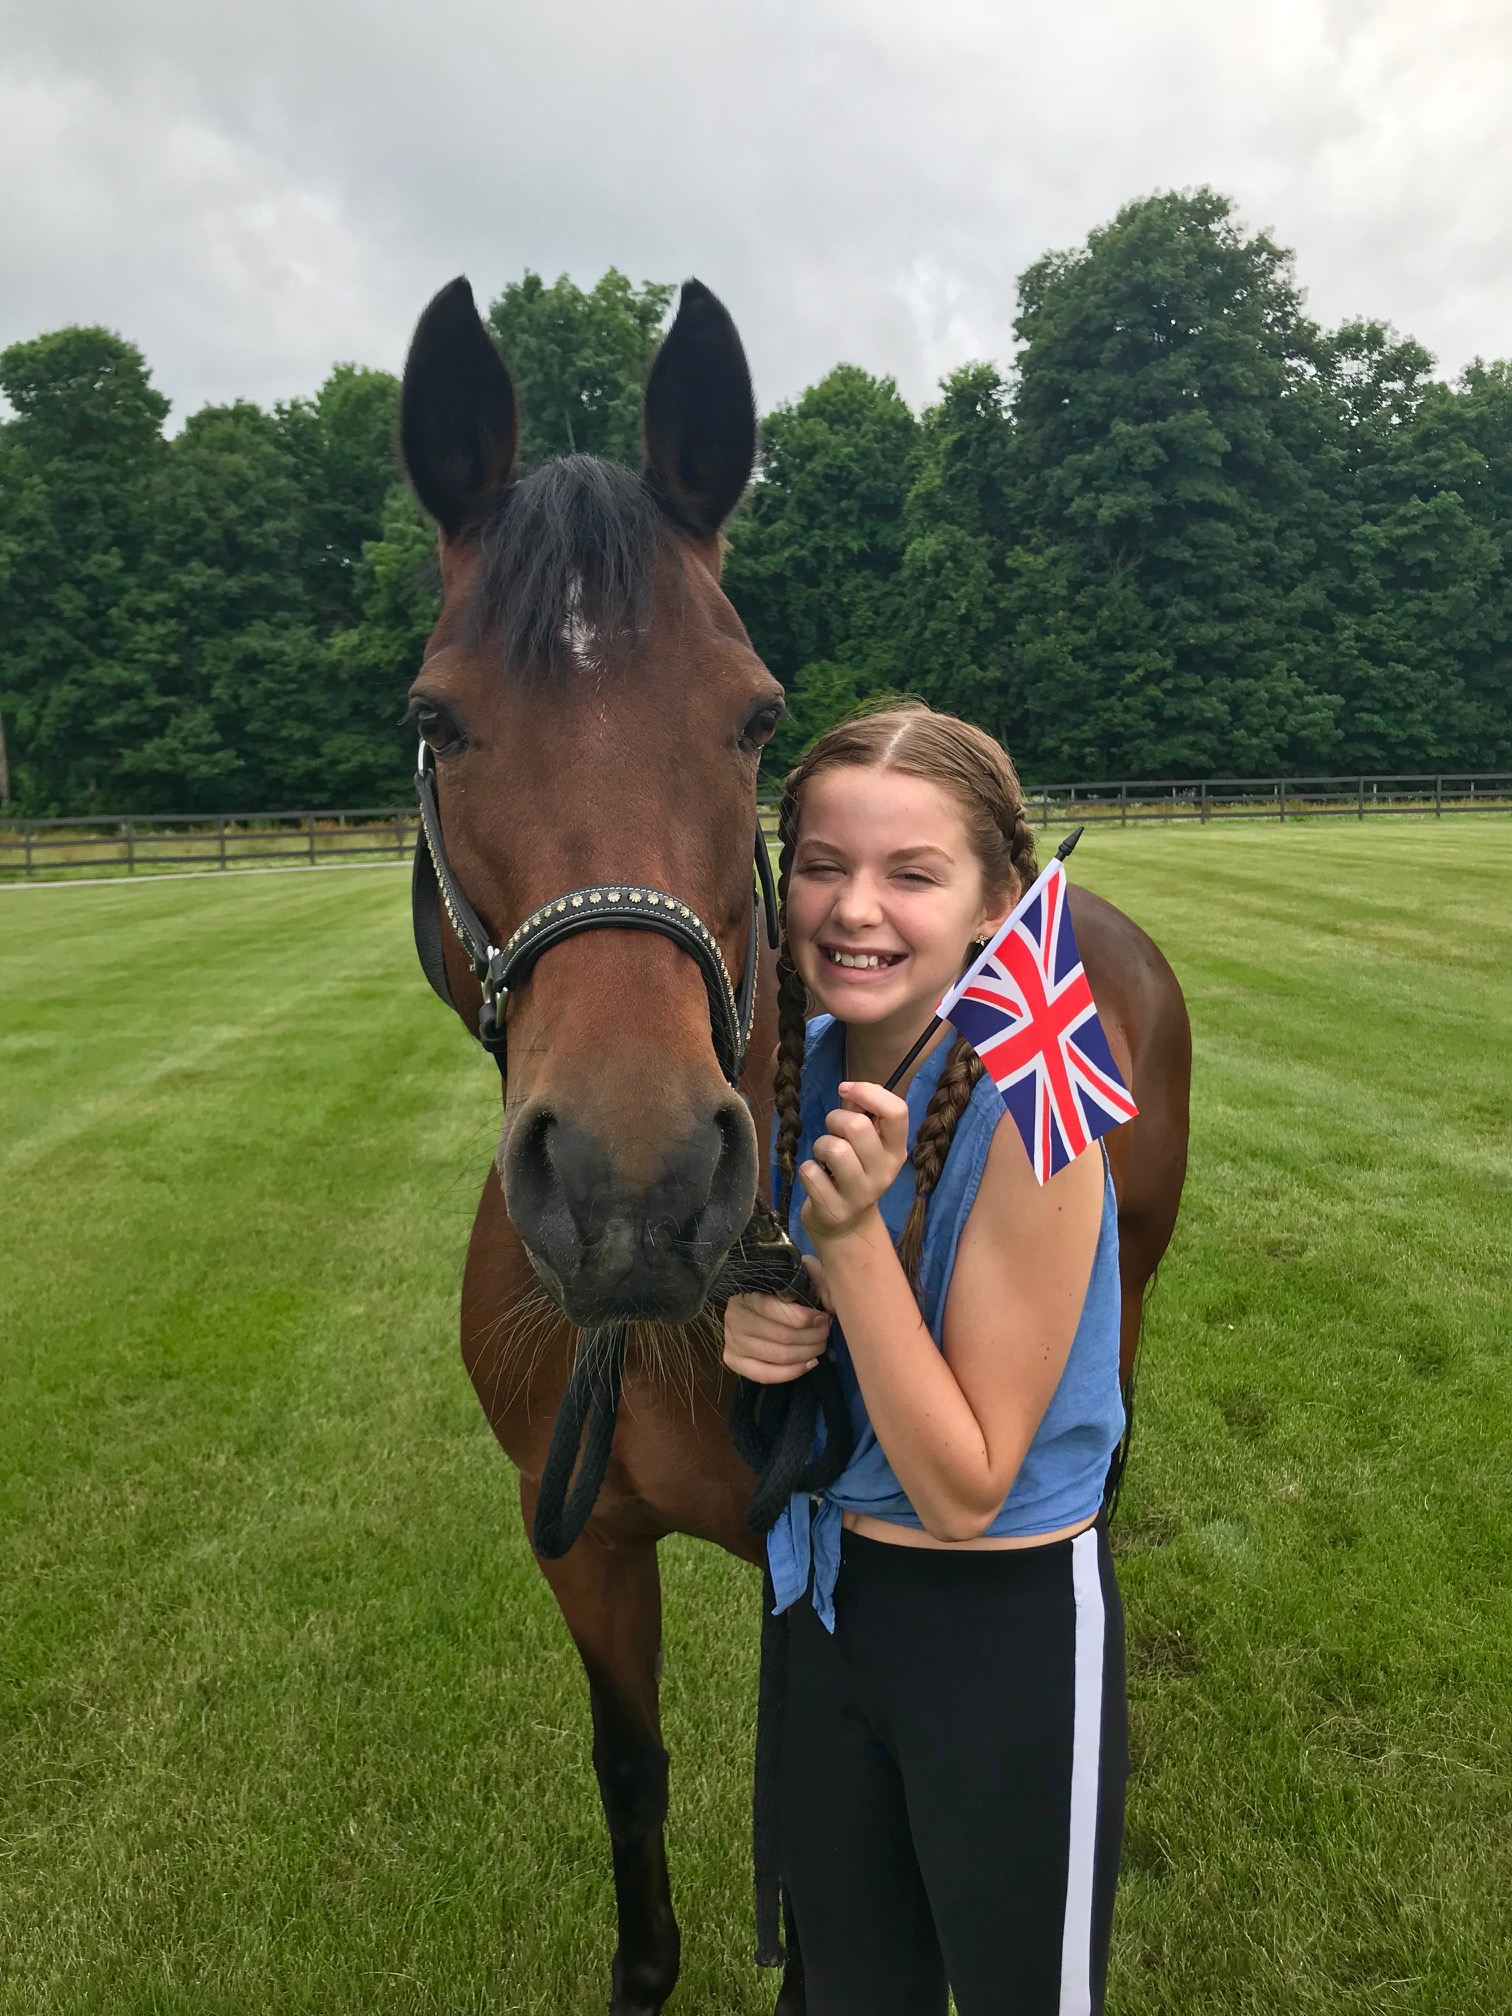 TDF's Michael Poulin Fund Awards Grant to Dressage4Kids Inc.